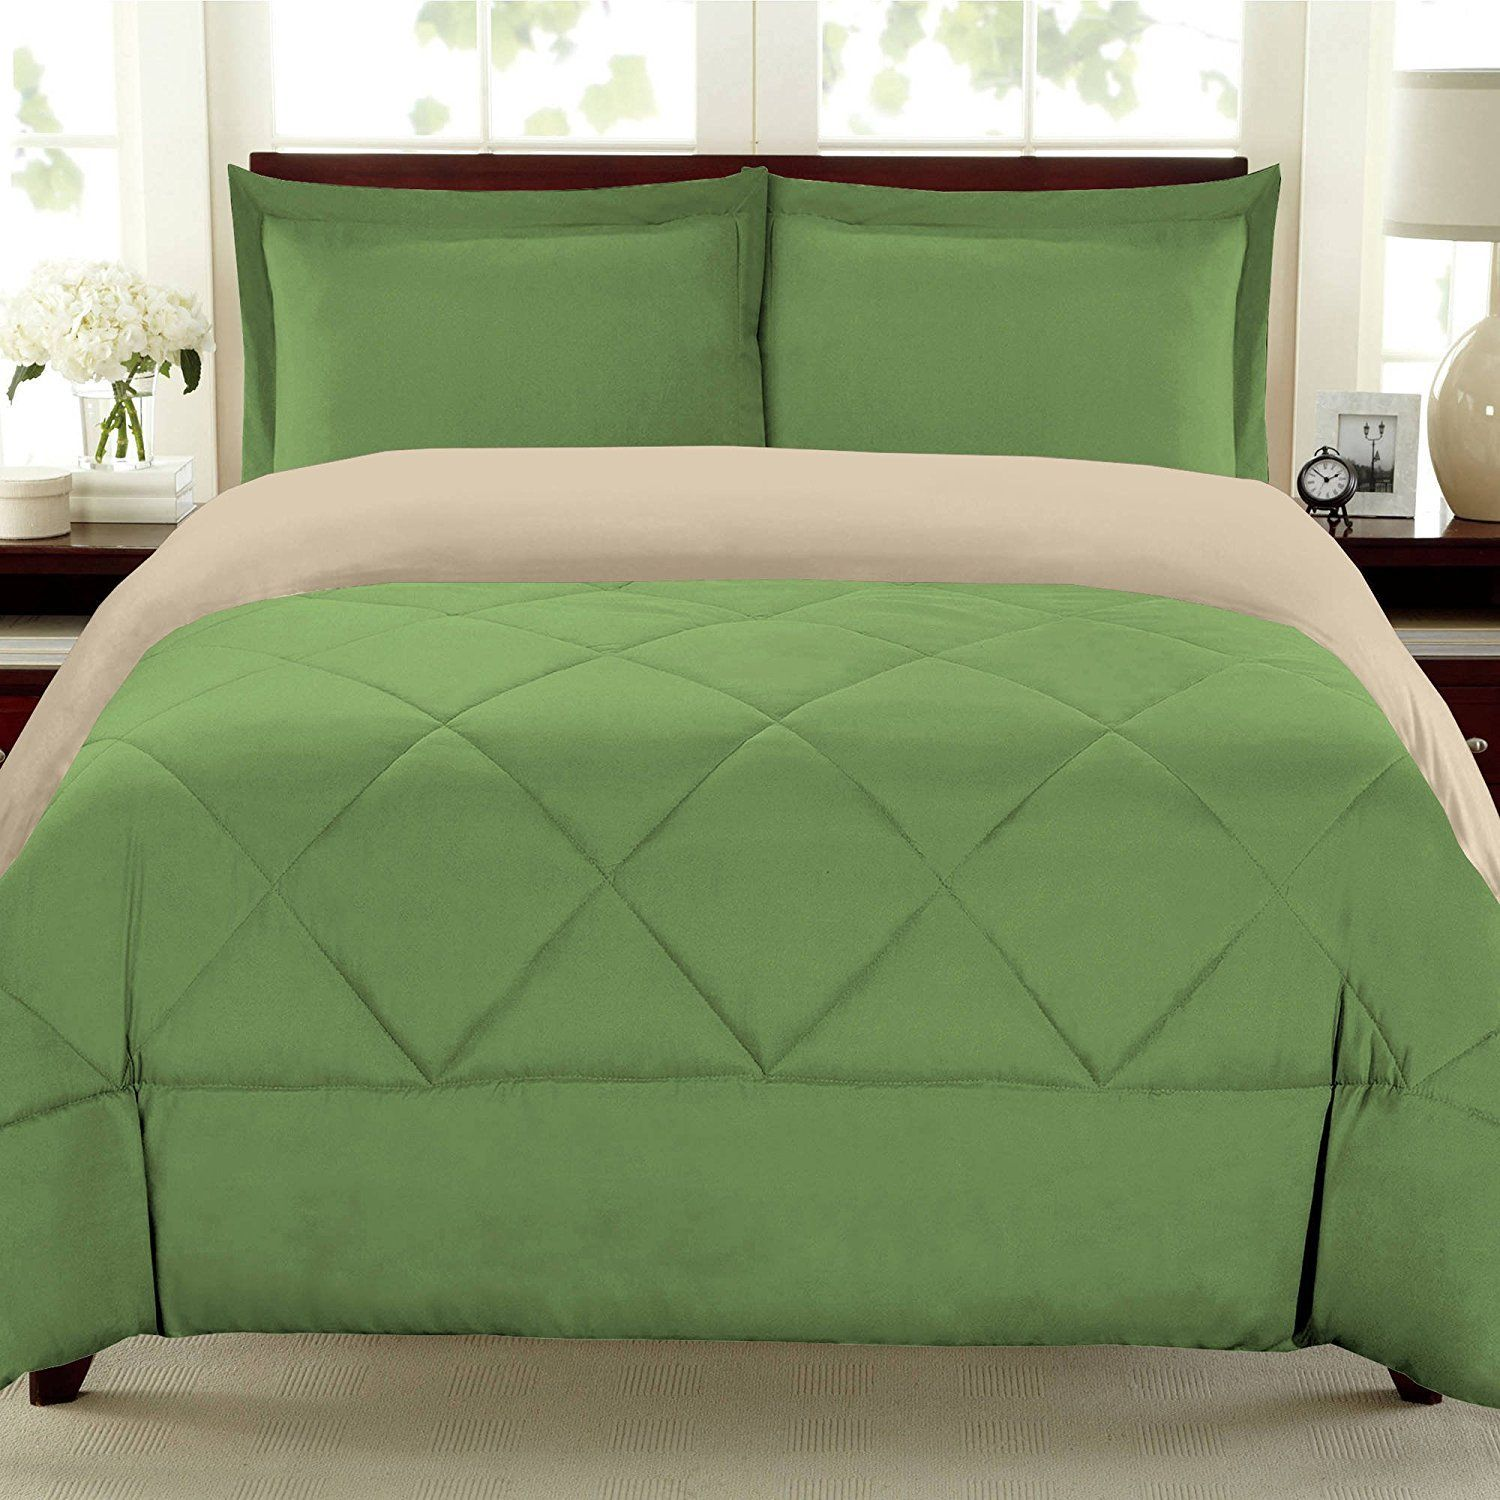 green cream pleated pattern comforter full queen size luxury master